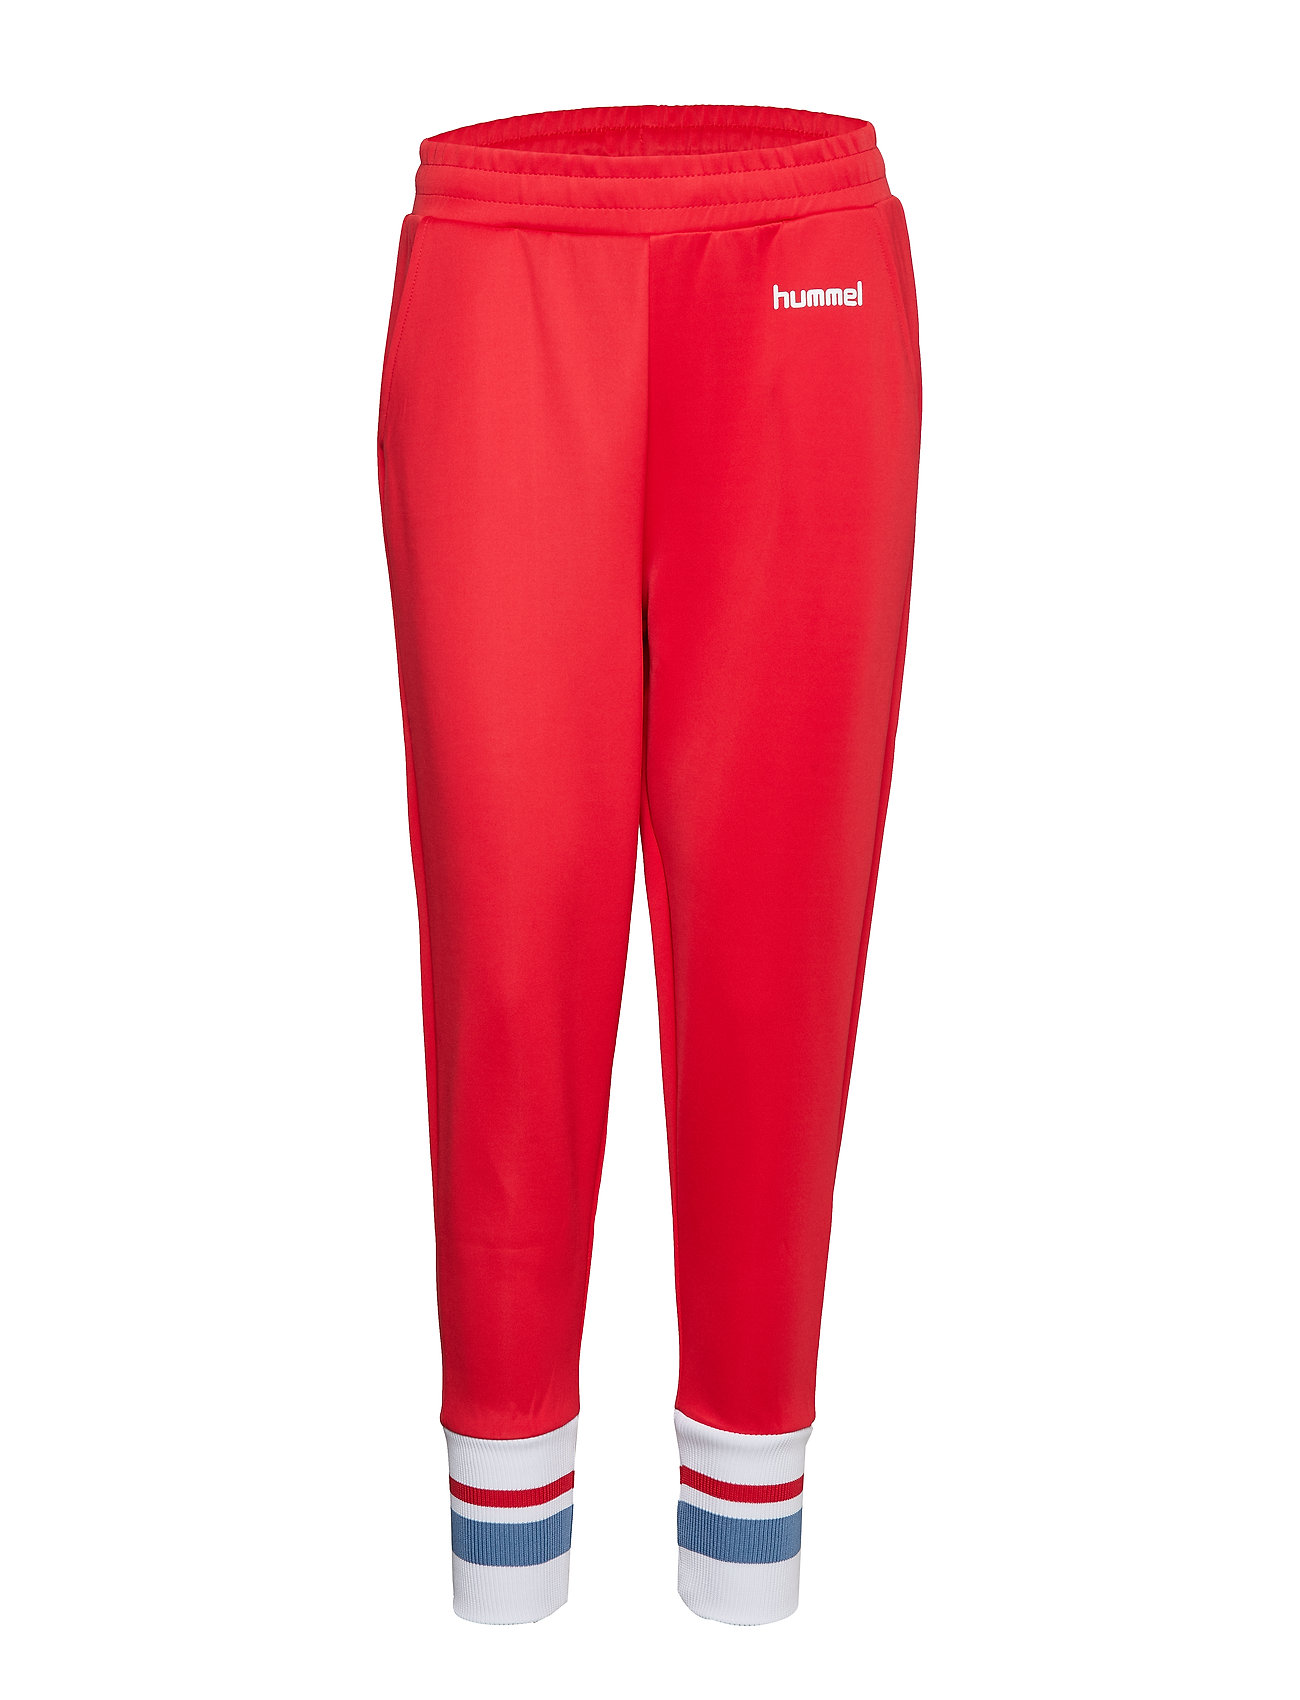 Hummel Hive hmlBOLETTE PANTS - TRUE RED